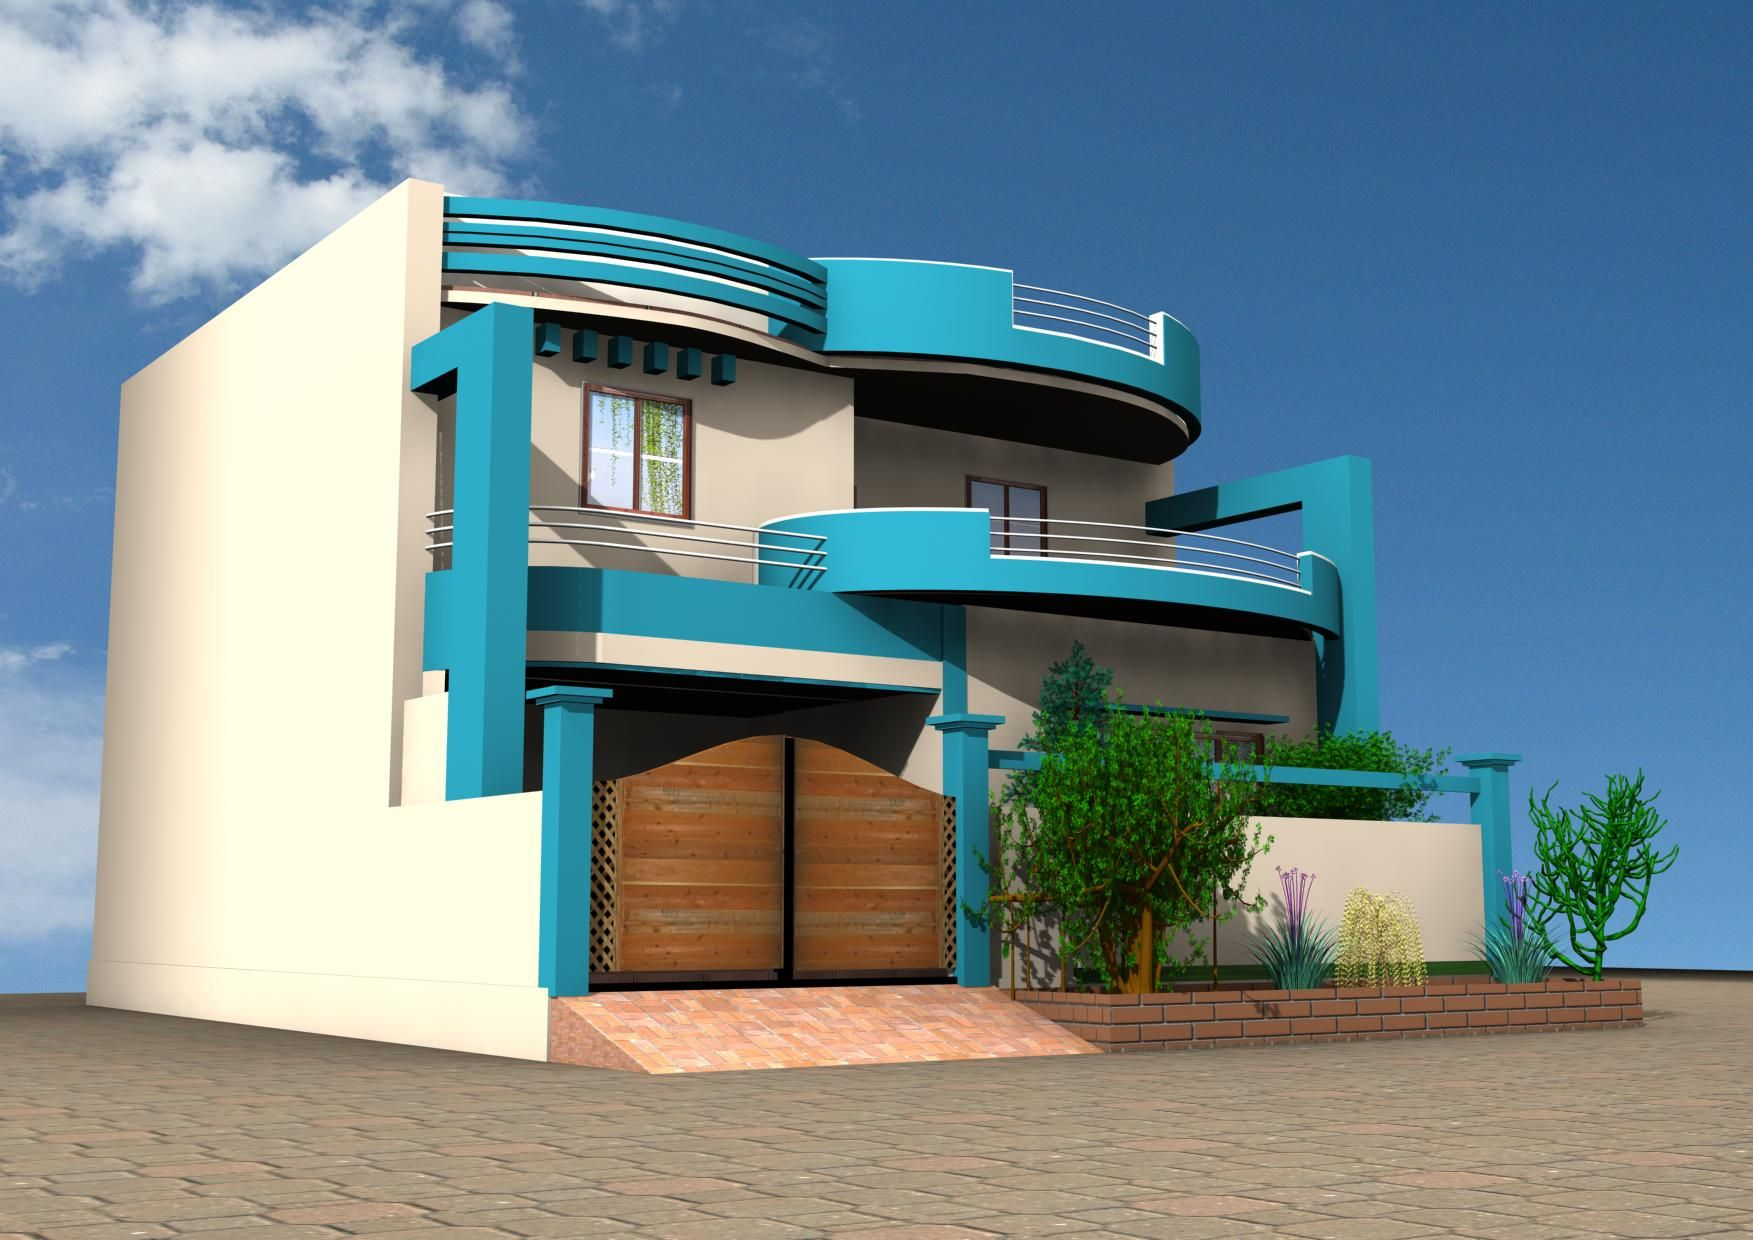 3d home design images hd 1080p for House design plan 3d